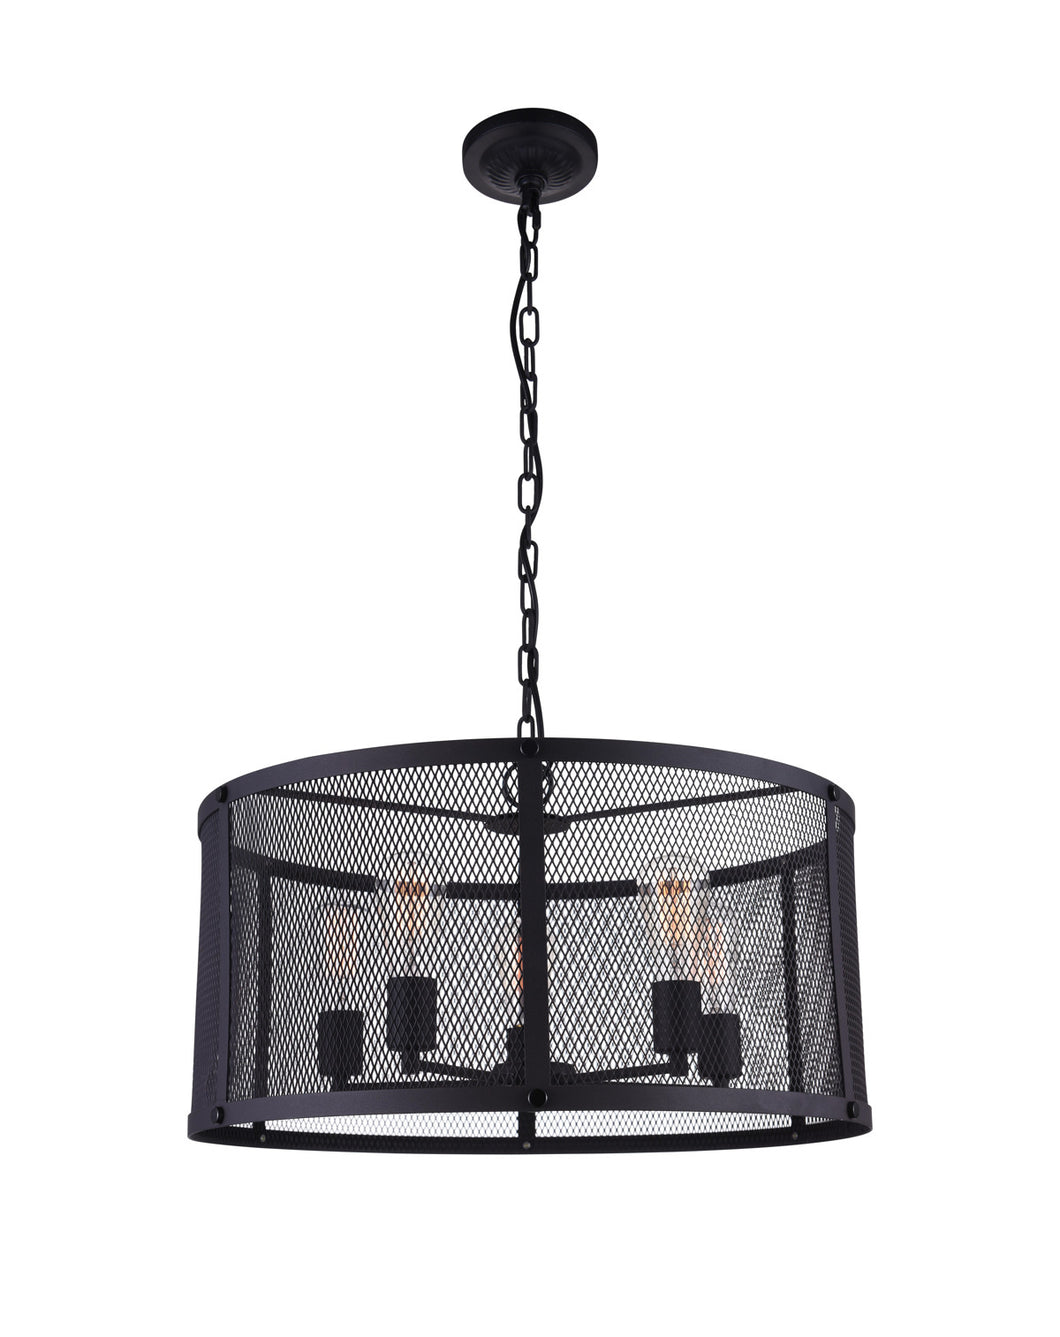 6 Light Drum Shade Pendant with Reddish Black finish